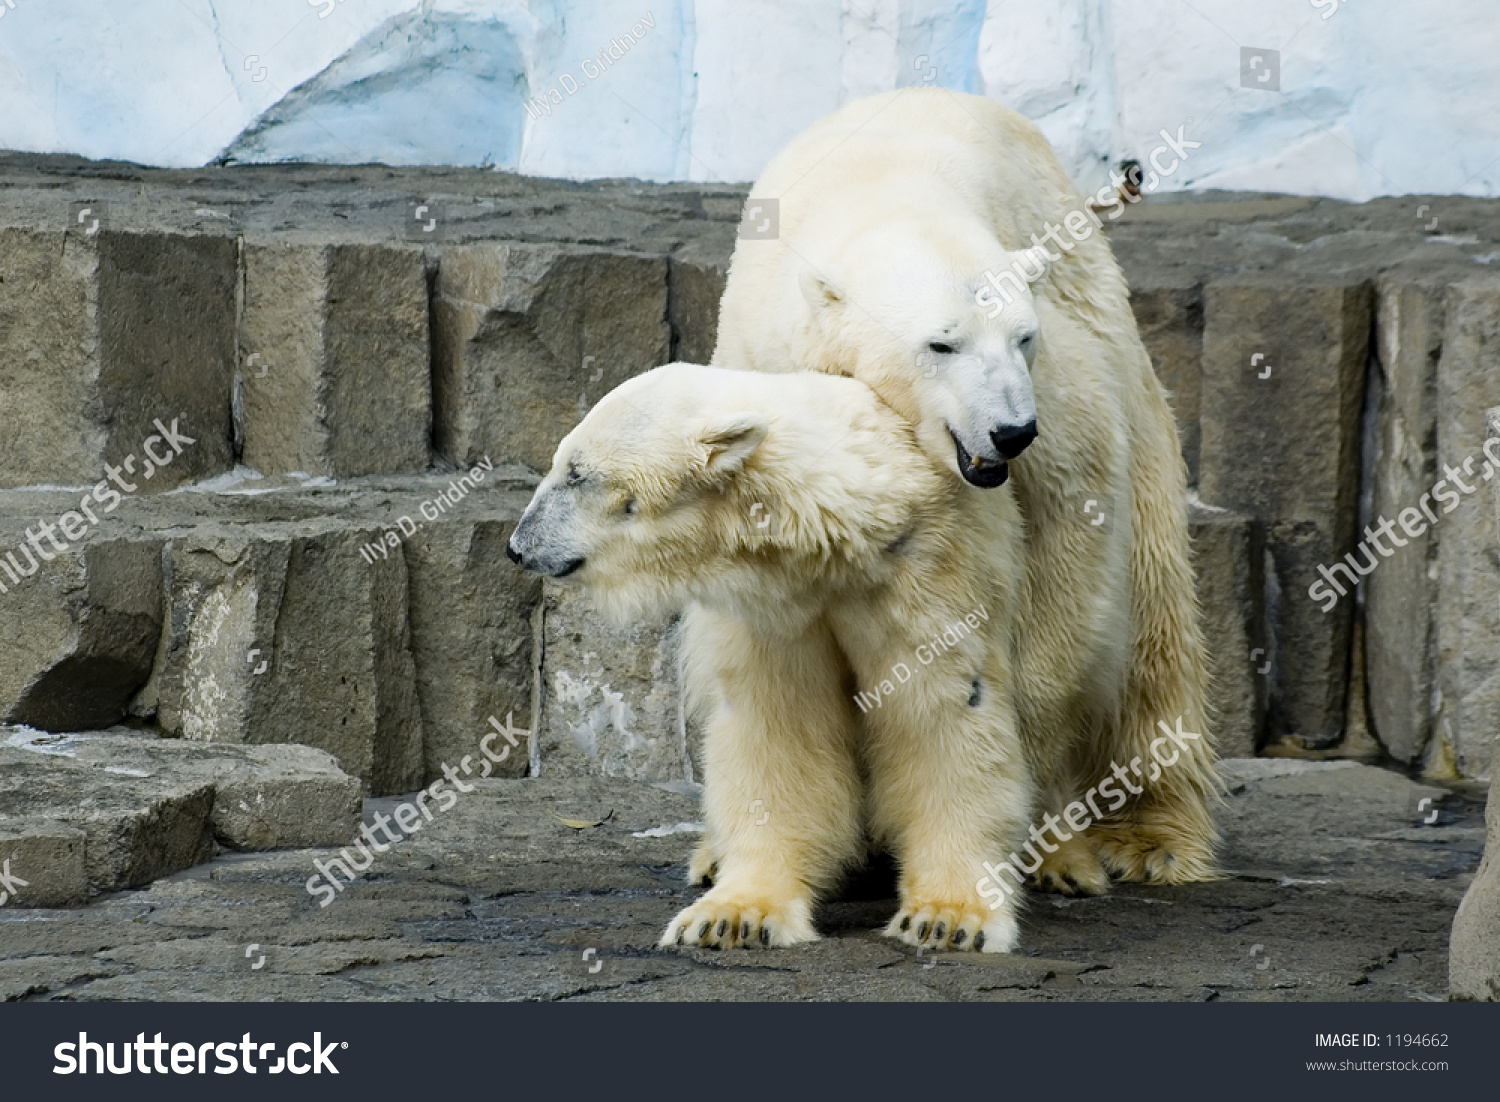 polar bear couple - photo #25